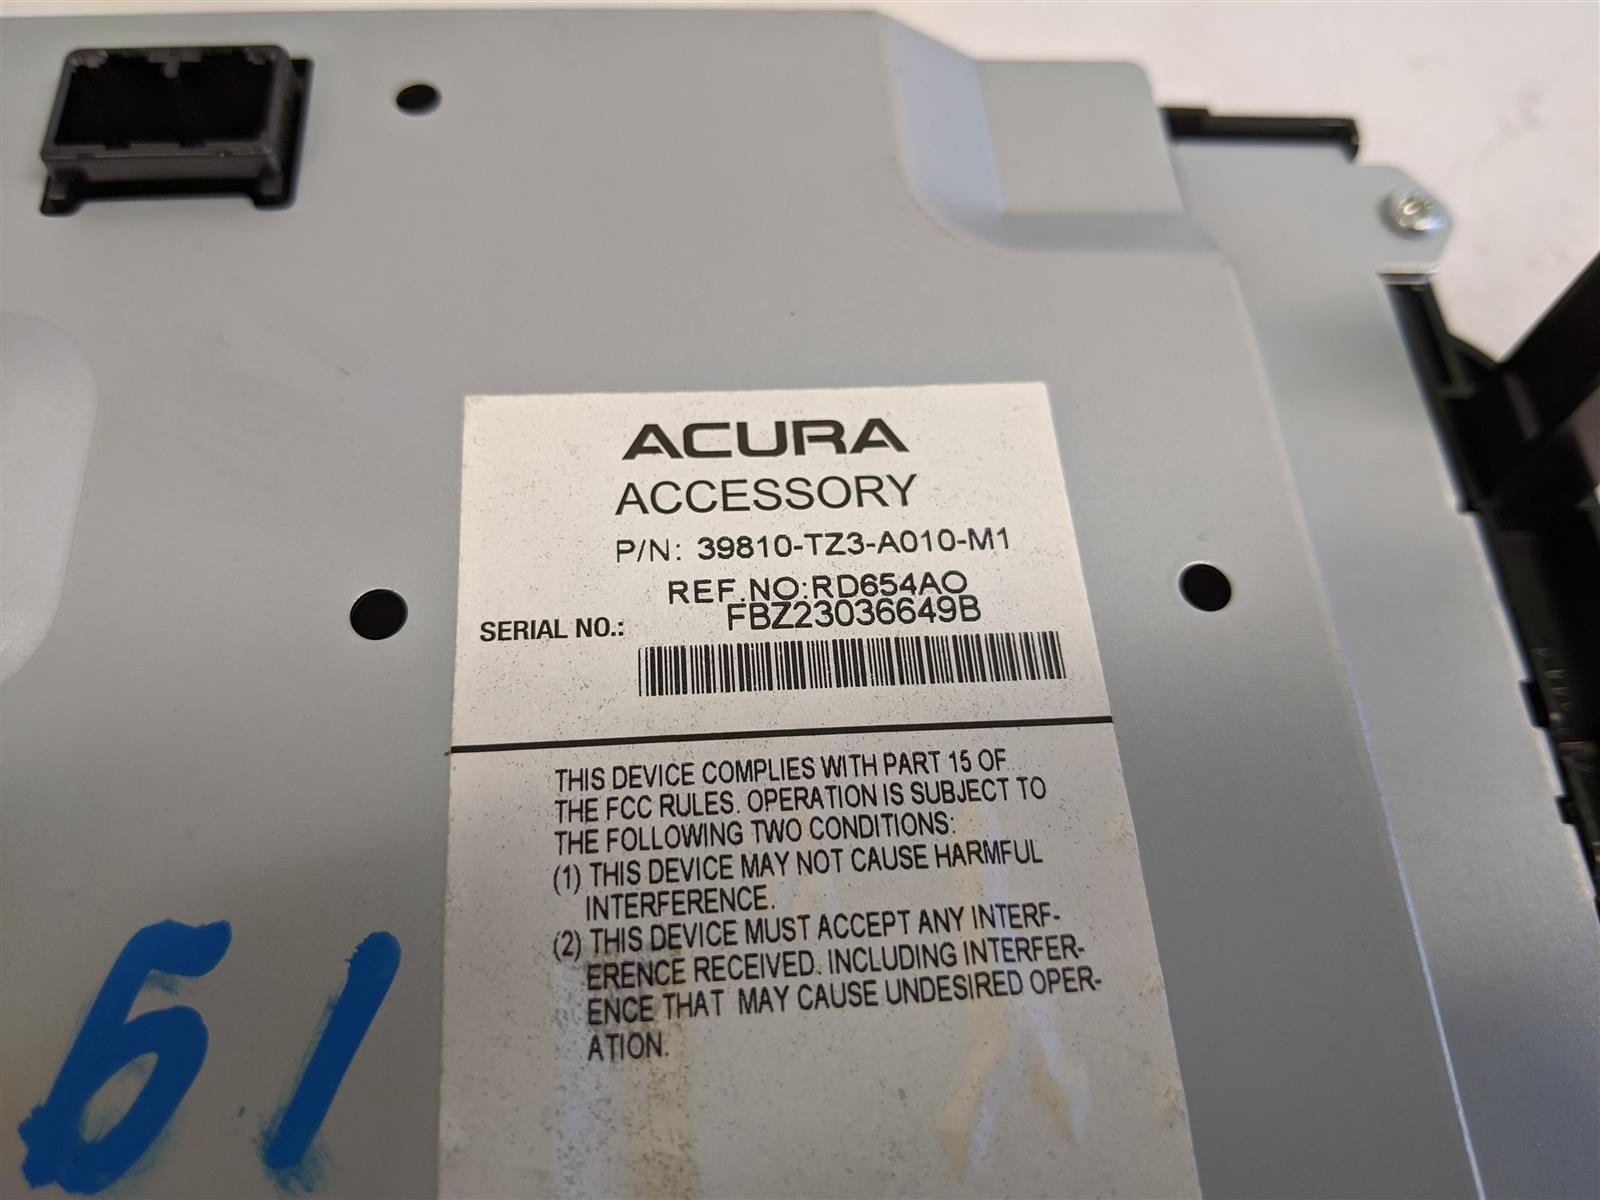 2015 Acura TLX Upper Display Screen Replacement